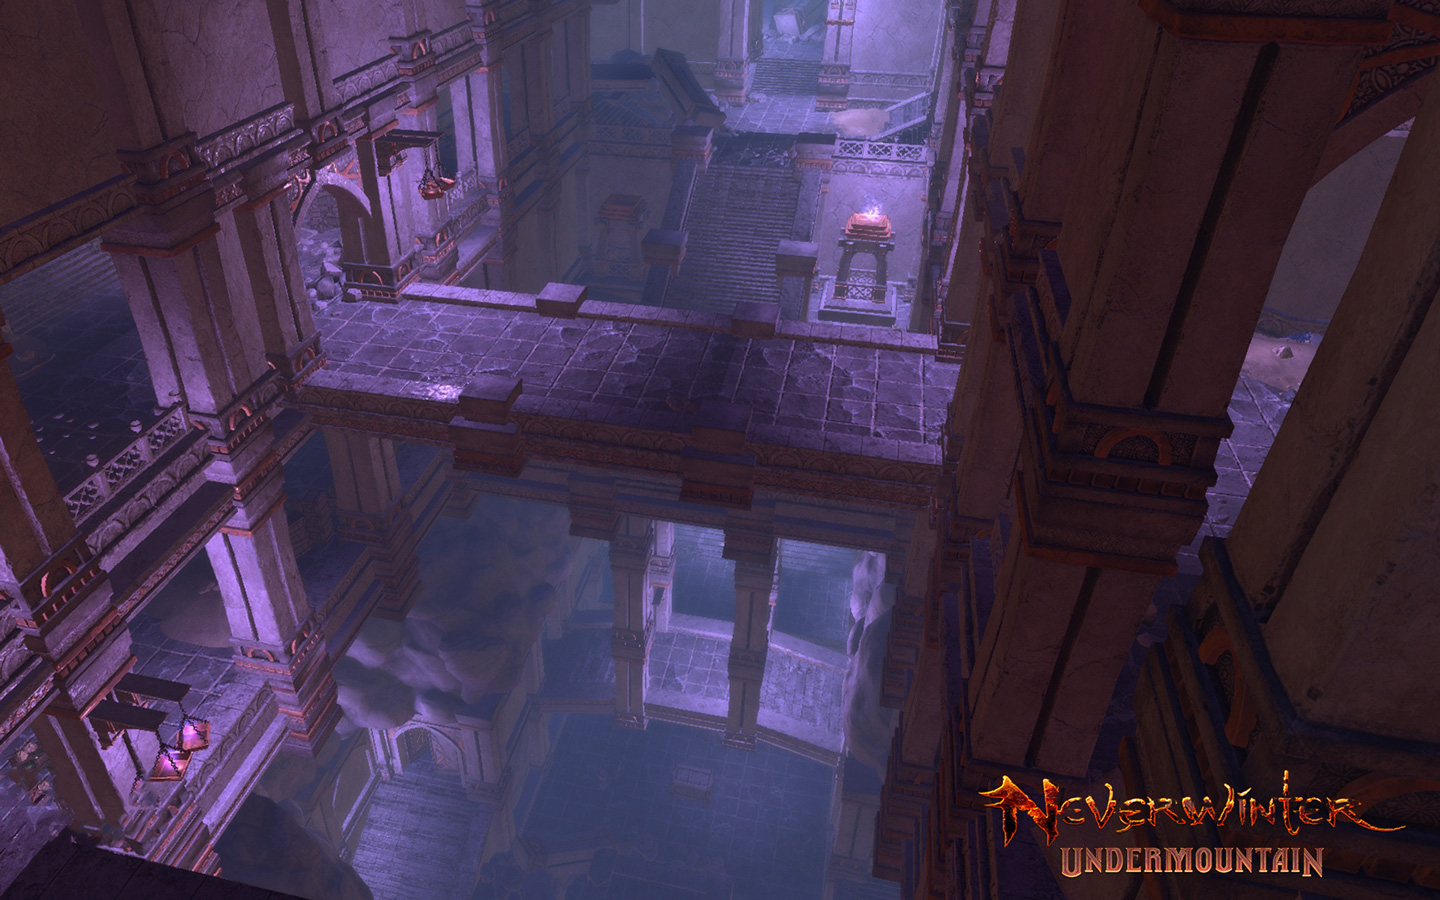 Neverwinter Wallpaper in 1440x900